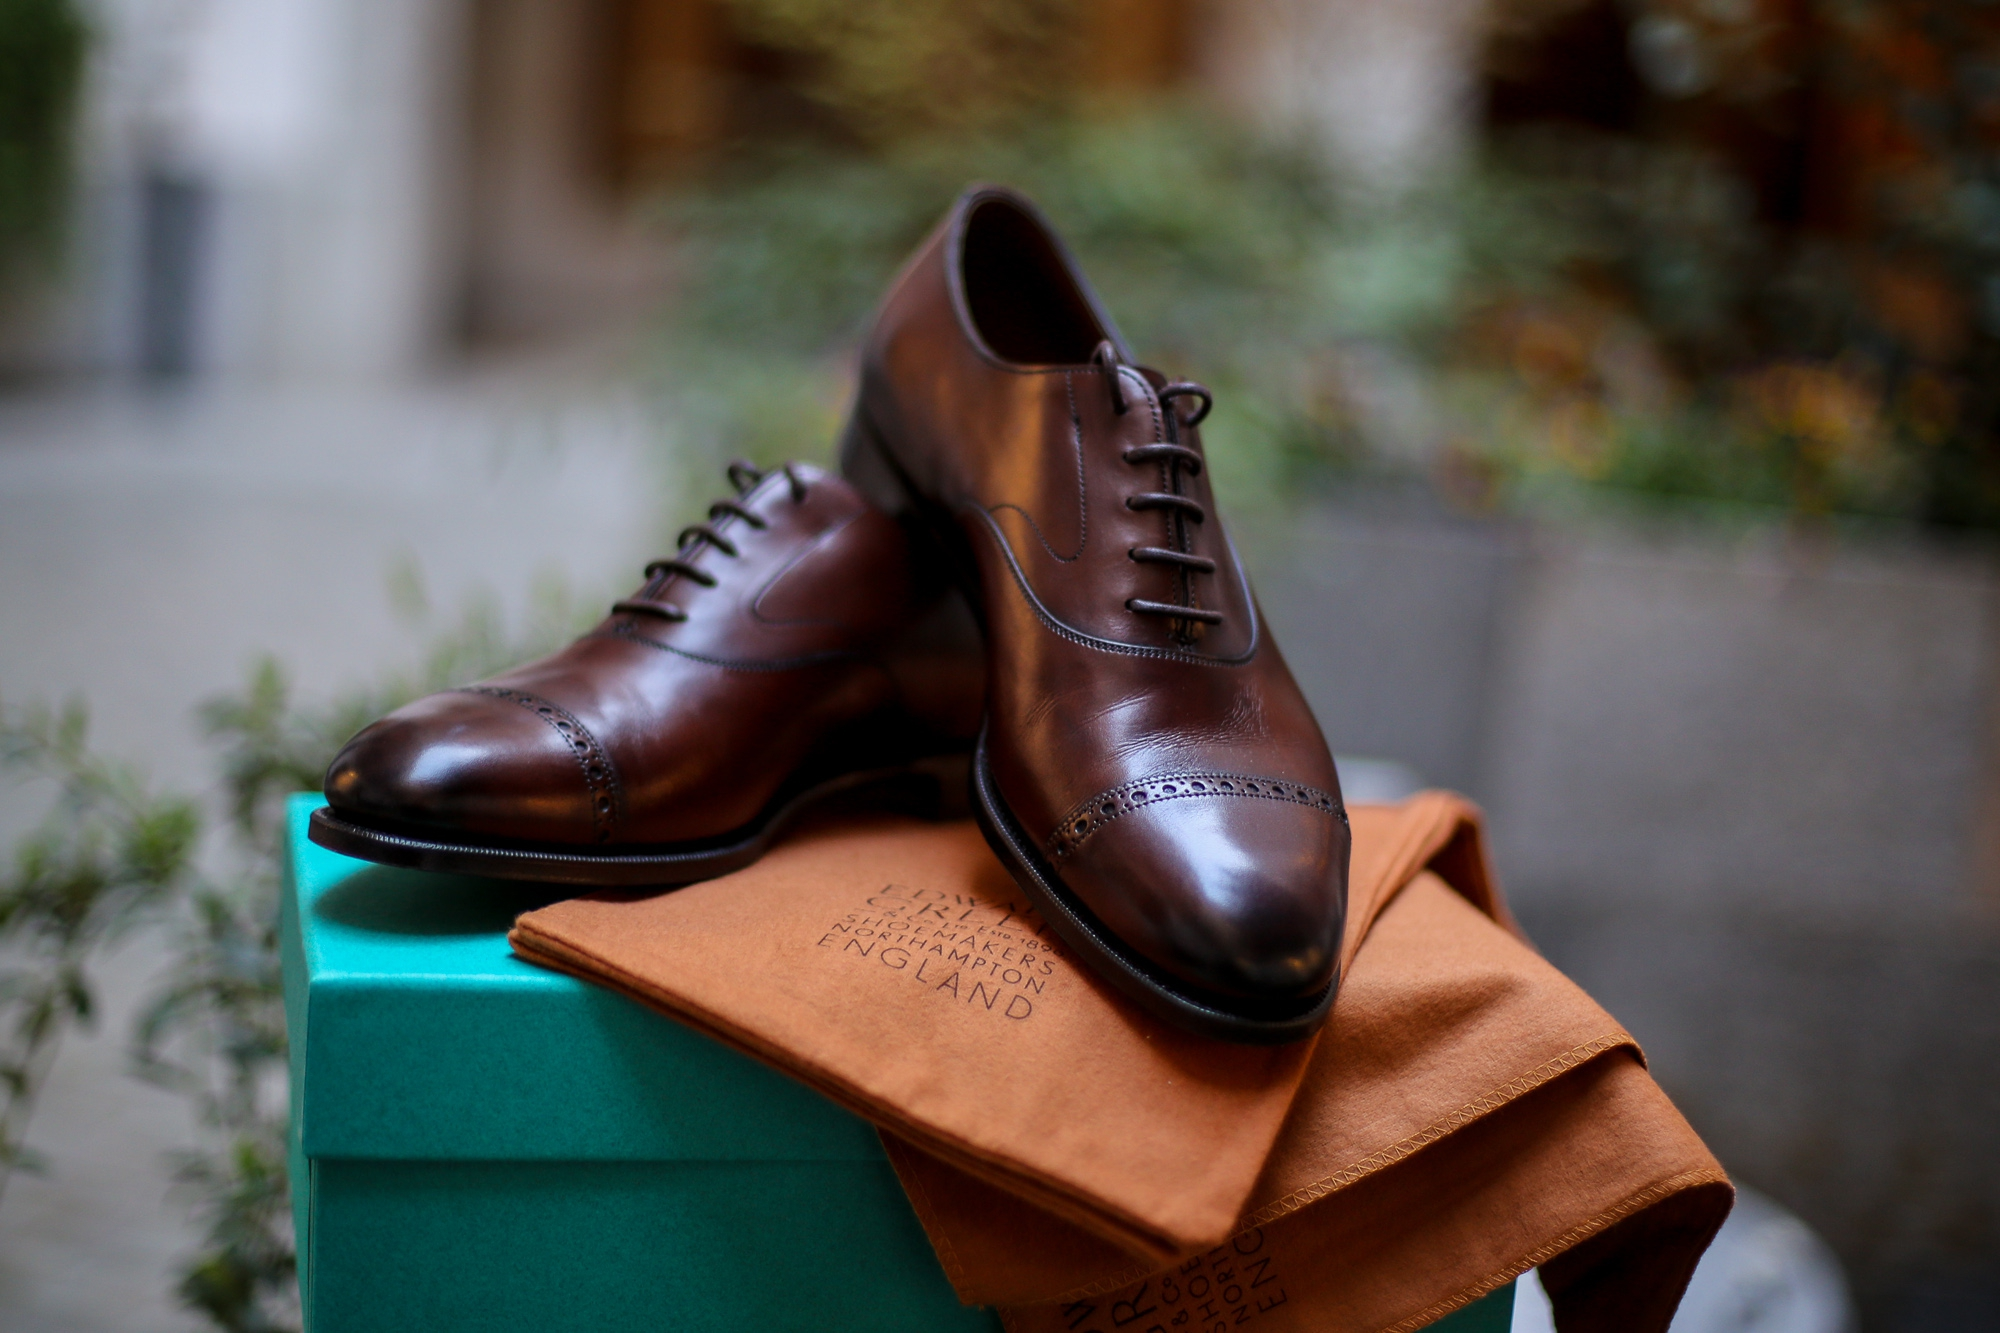 Review: Edward Green Berkeley Oxfords The quintessence of English style in footwear